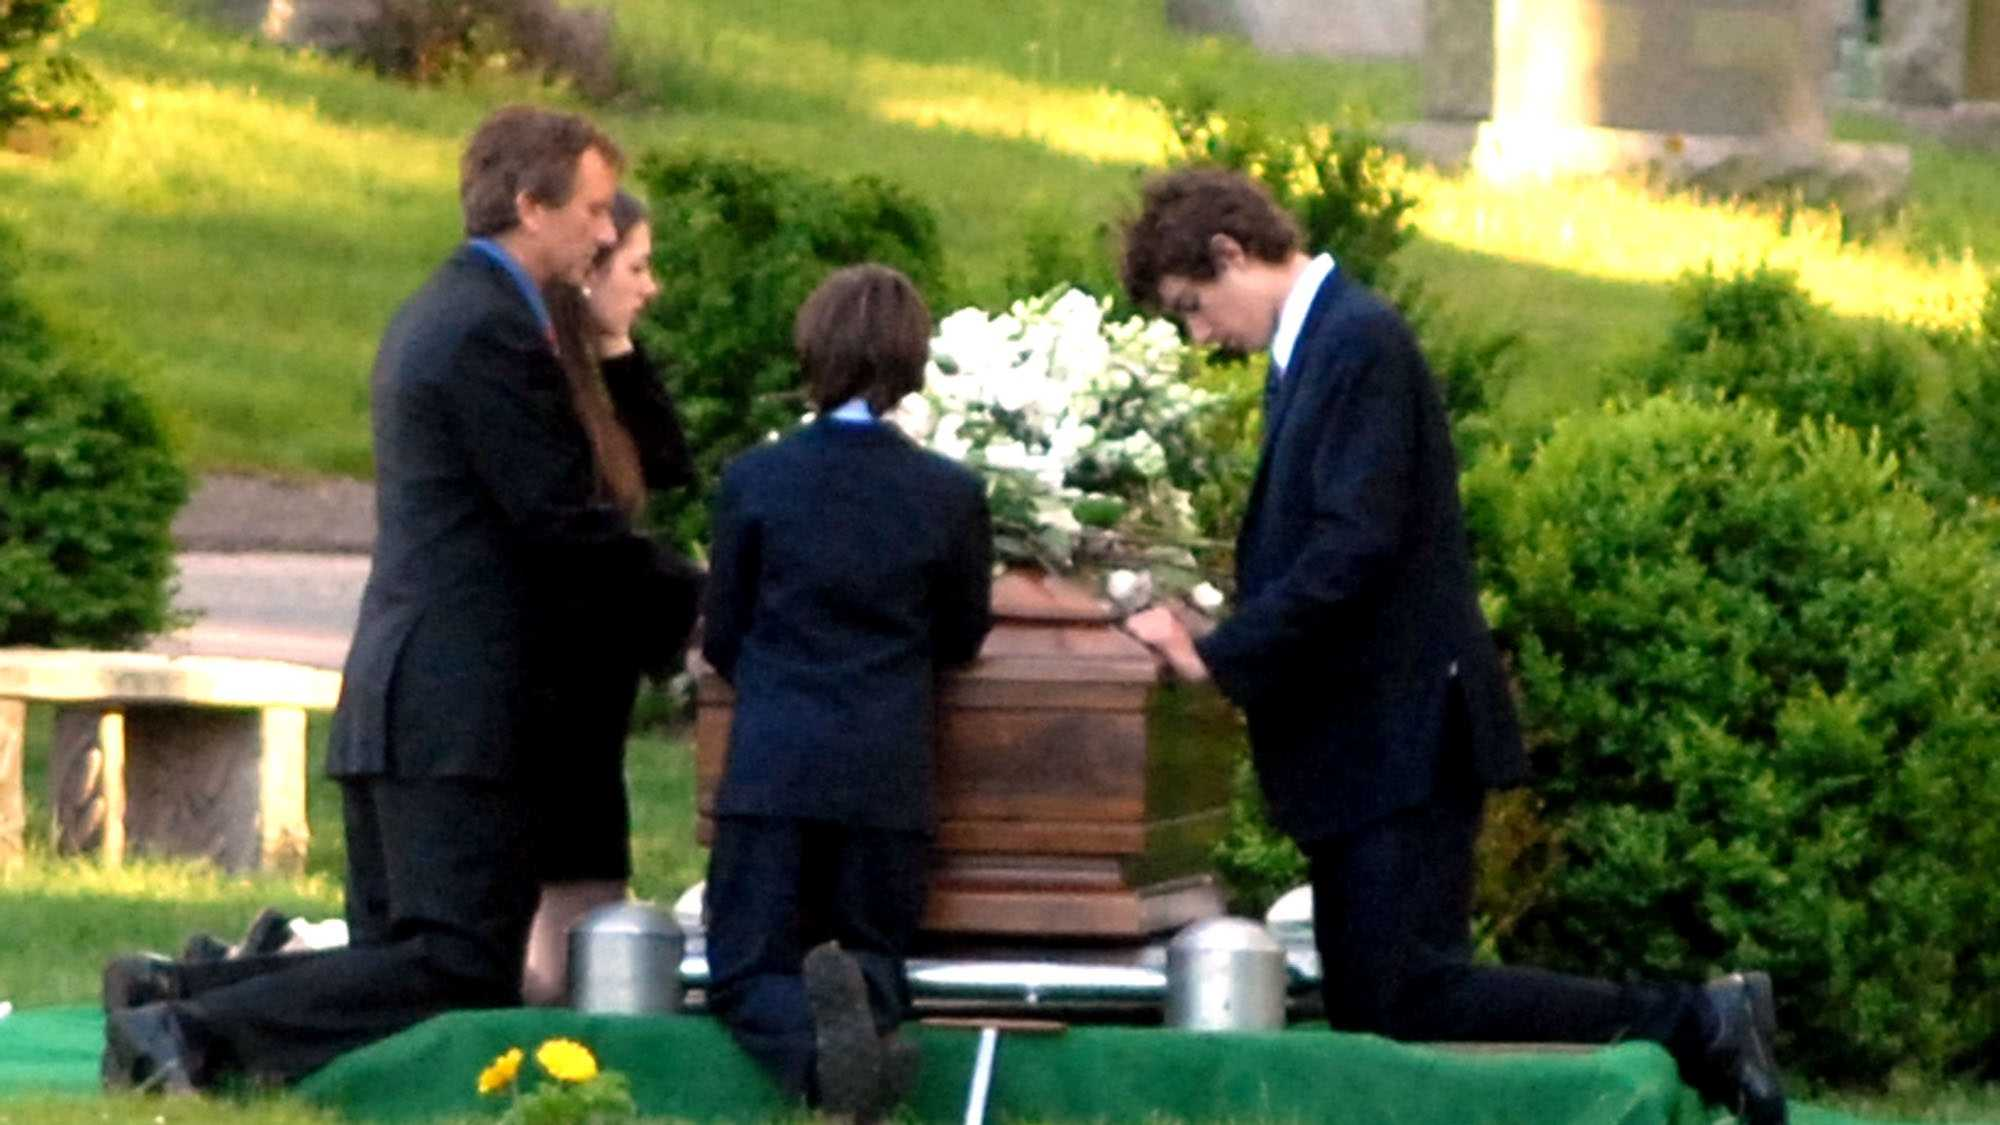 Robert Kennedy, Jr. (left) and his children pray at the casket of the late Mary Kennedy during a burial service at St. Francis Xavier Cemetery in Centerville, Massachusetts Saturday, May 19, 2012.